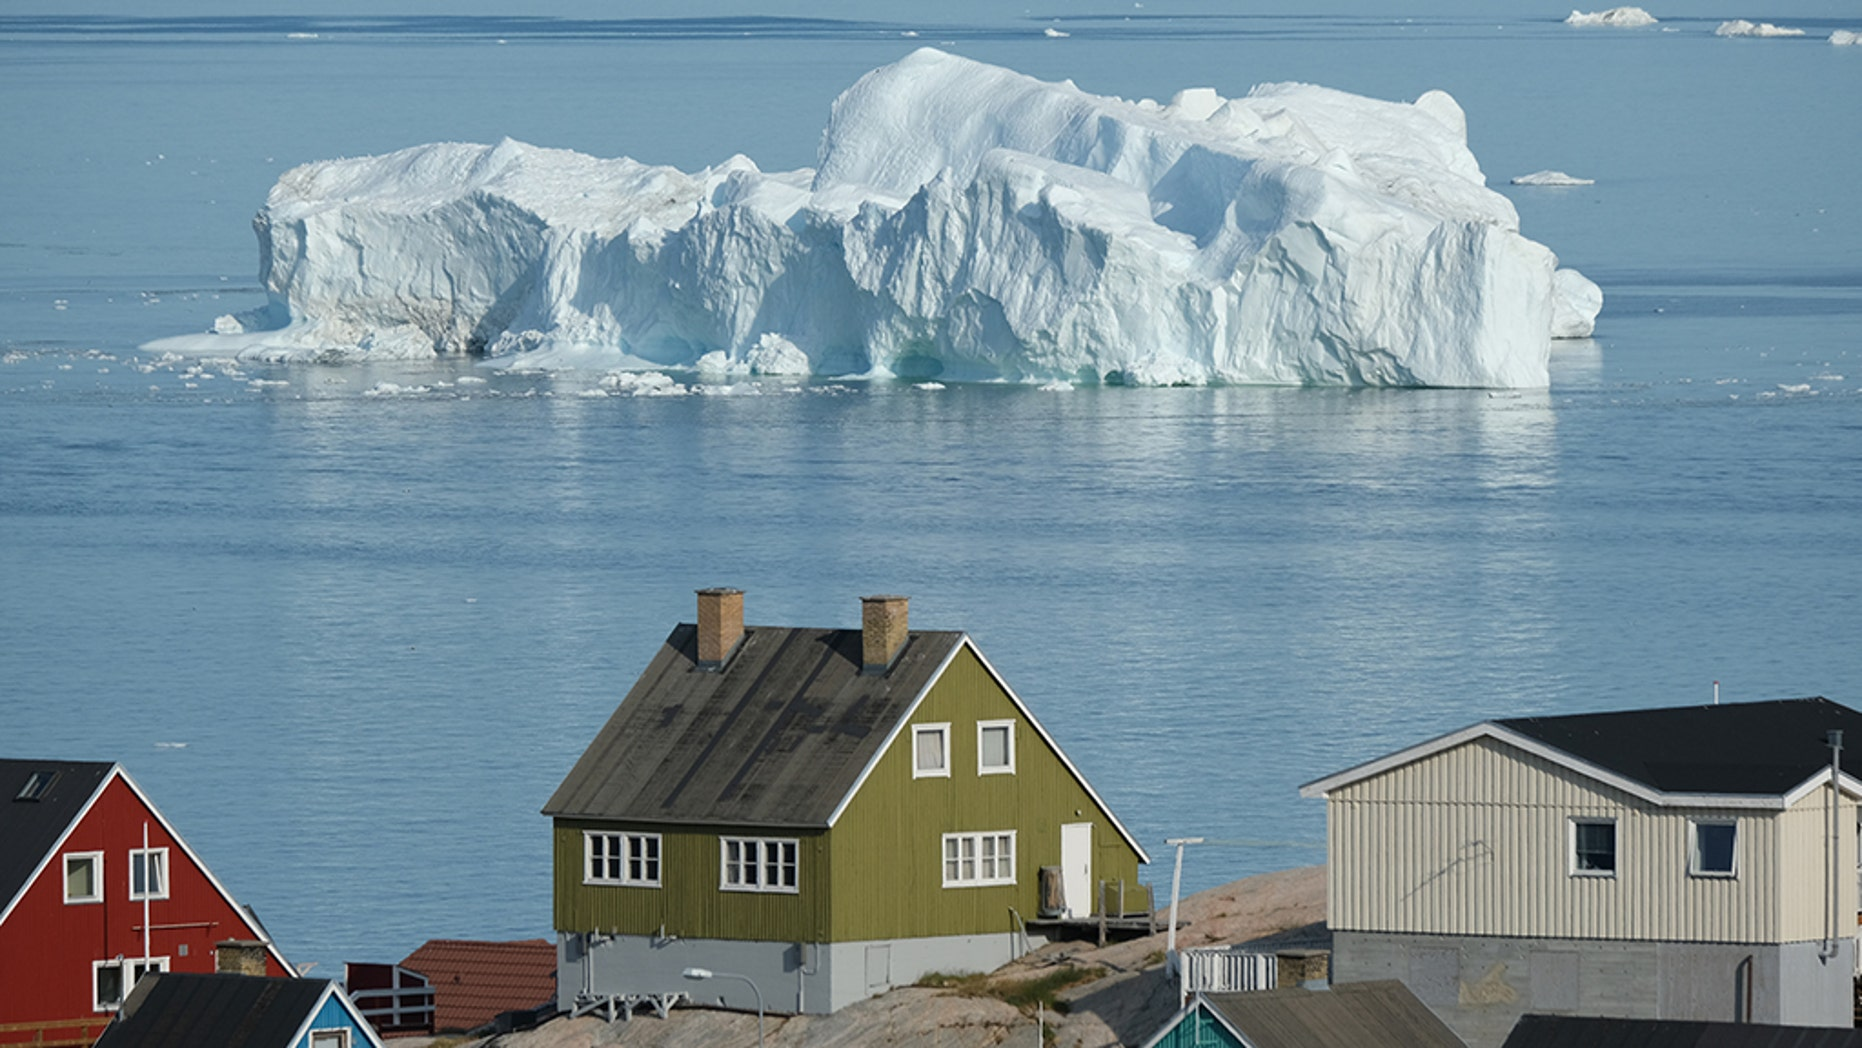 An iceberg floats in Disko Bay behind houses during unseasonably warm weather on July 30, 2019 in Ilulissat, Greenland. (Photo by Sean Gallup/Getty Images)